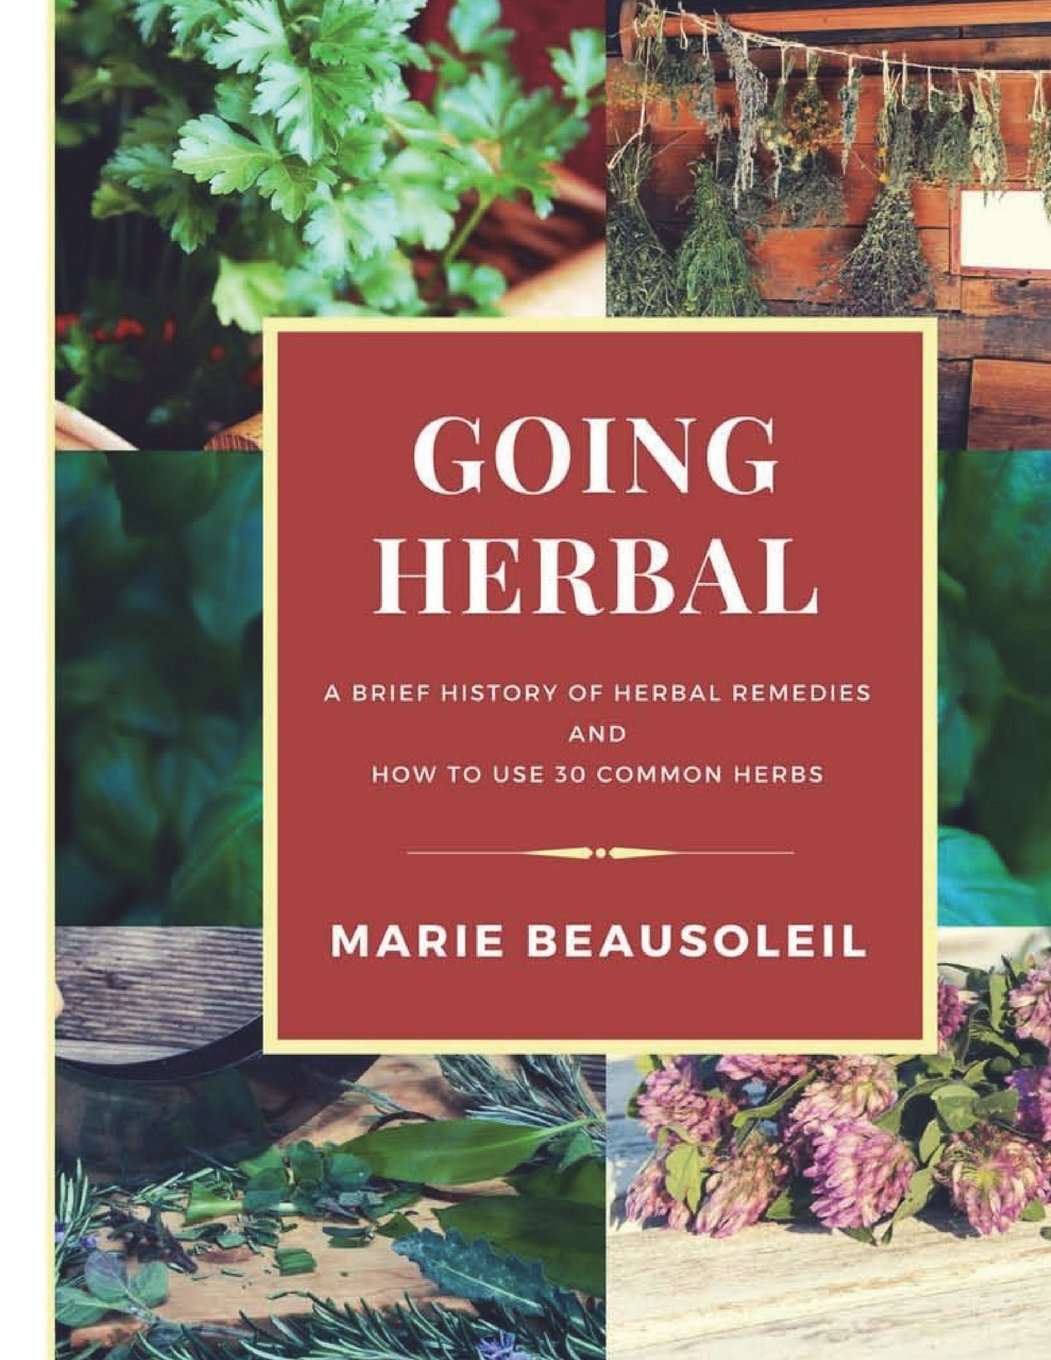 Read Online Going Herbal: Brief History of Herbal Remedies & Recipes Using 30 Common Herbs PDF